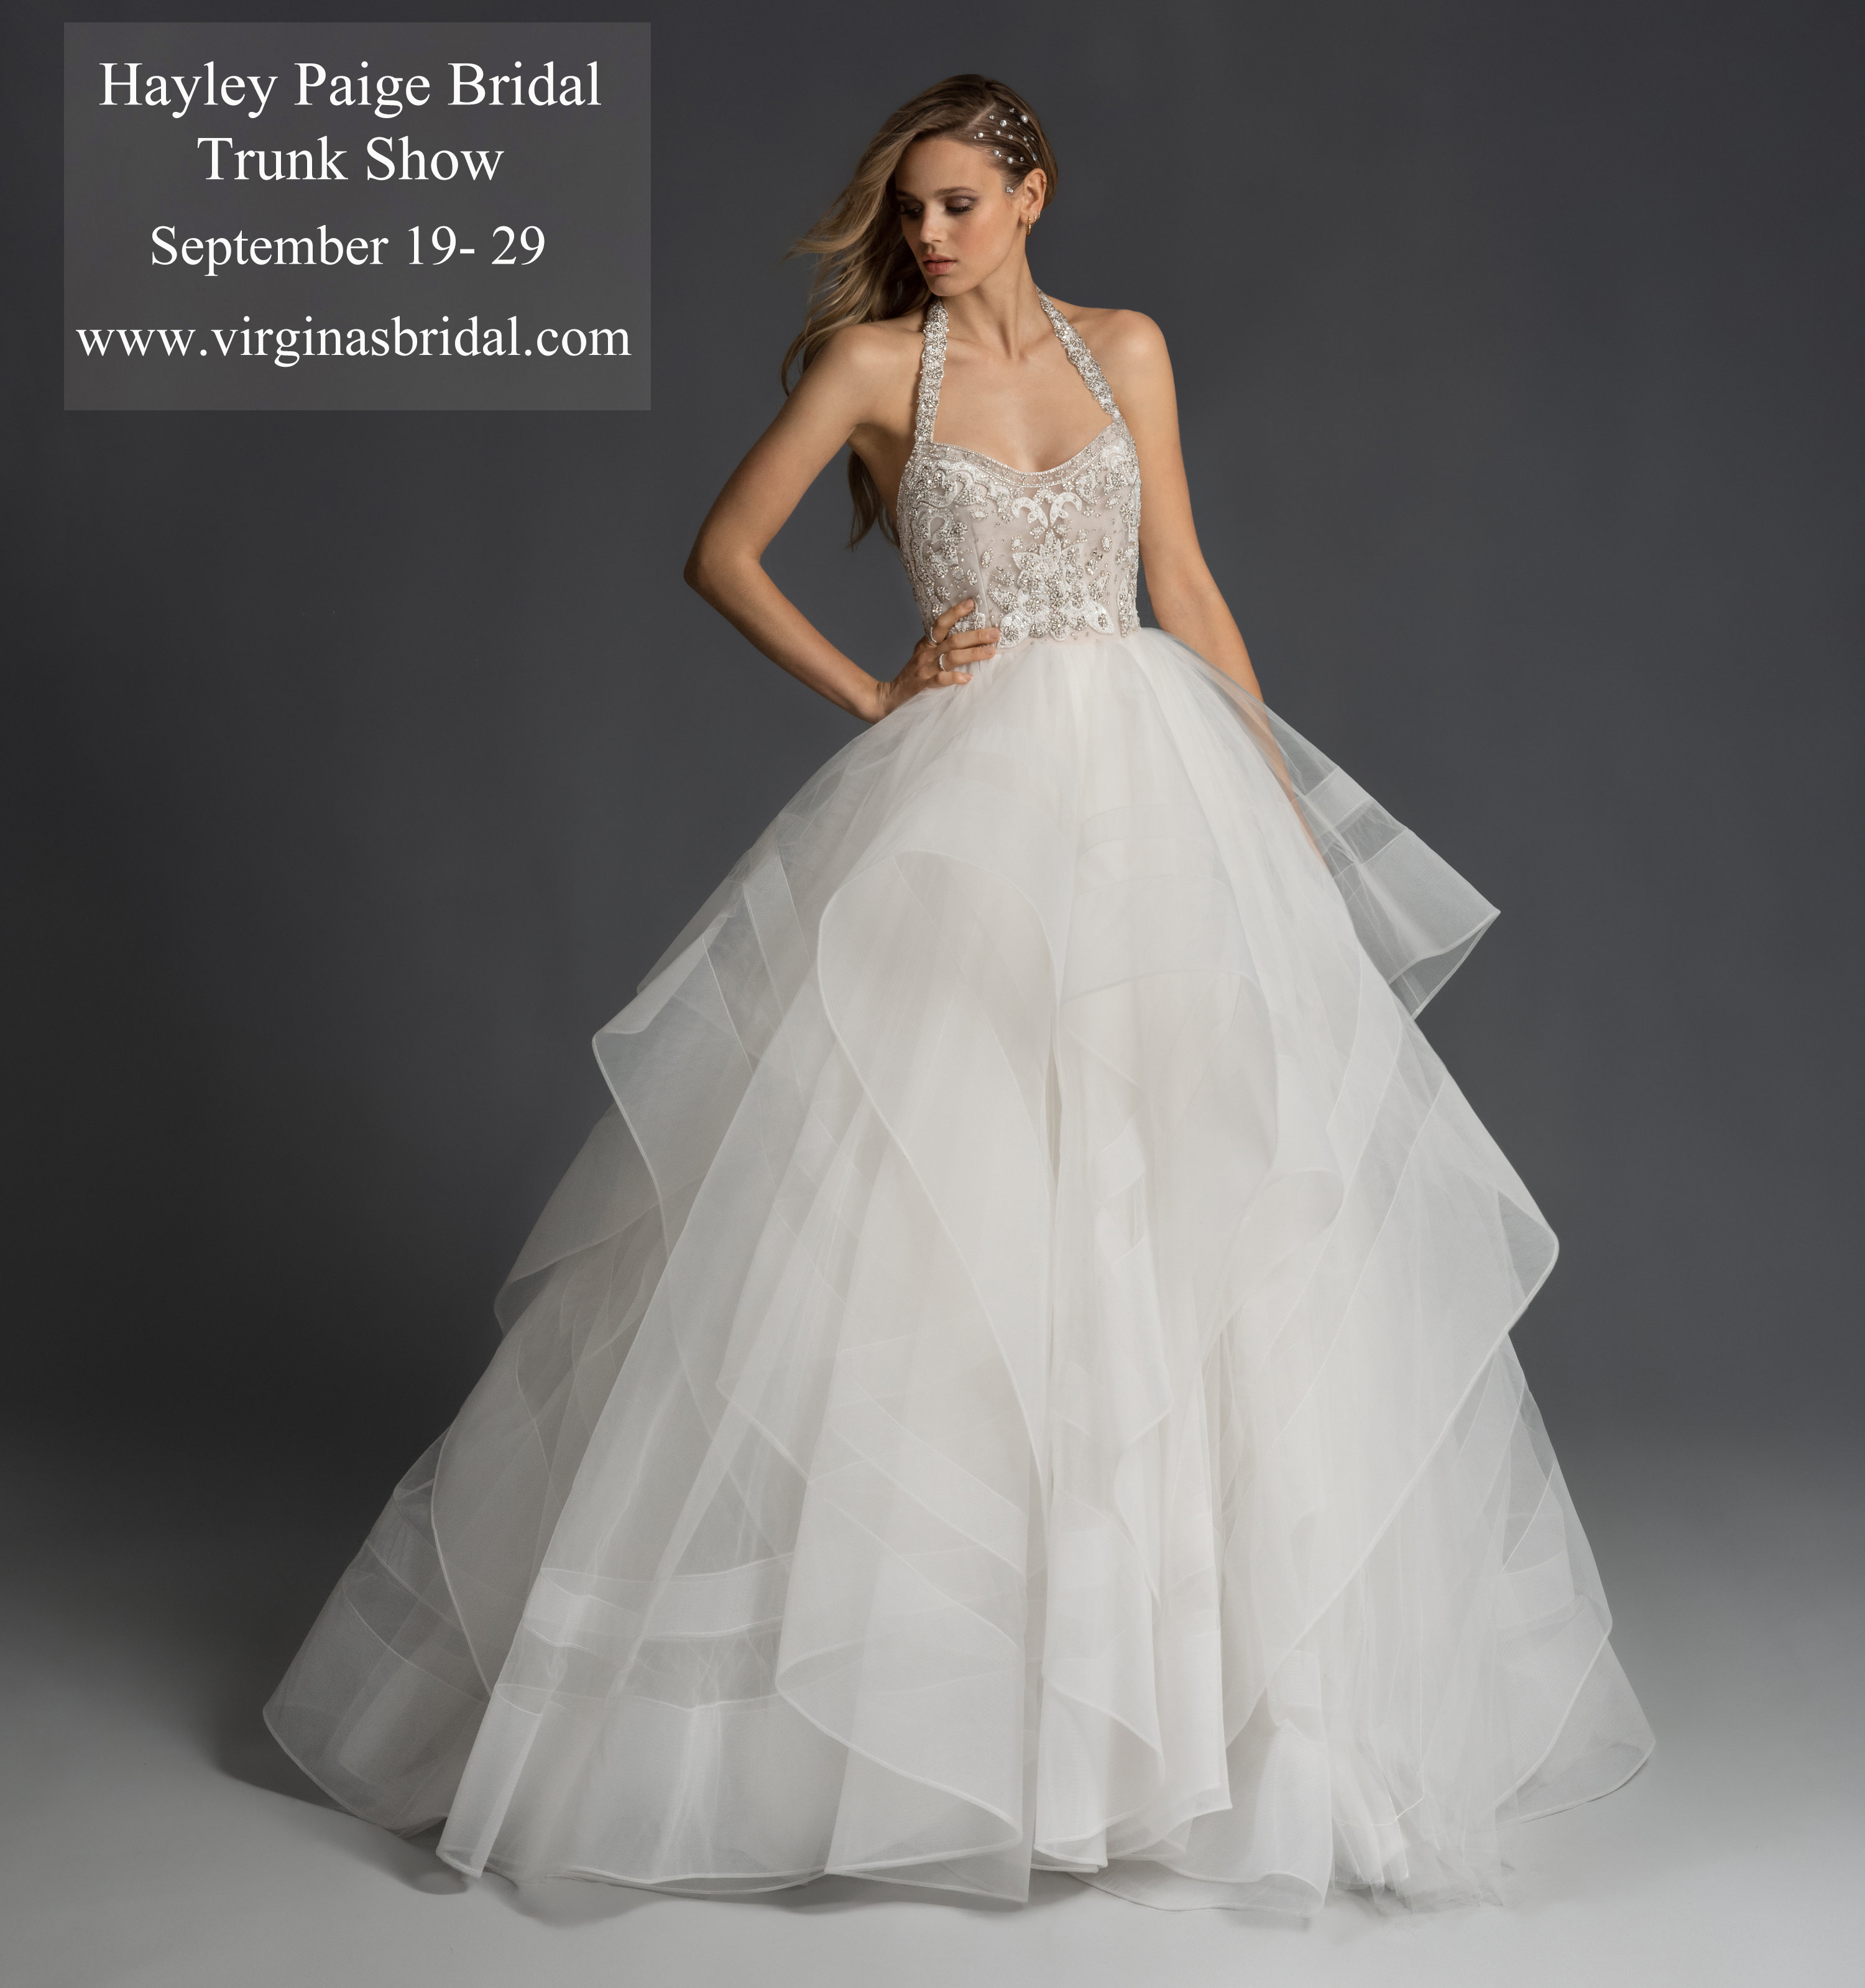 hayley-paige-bridal-fall-2019-style-6960-stassi_0